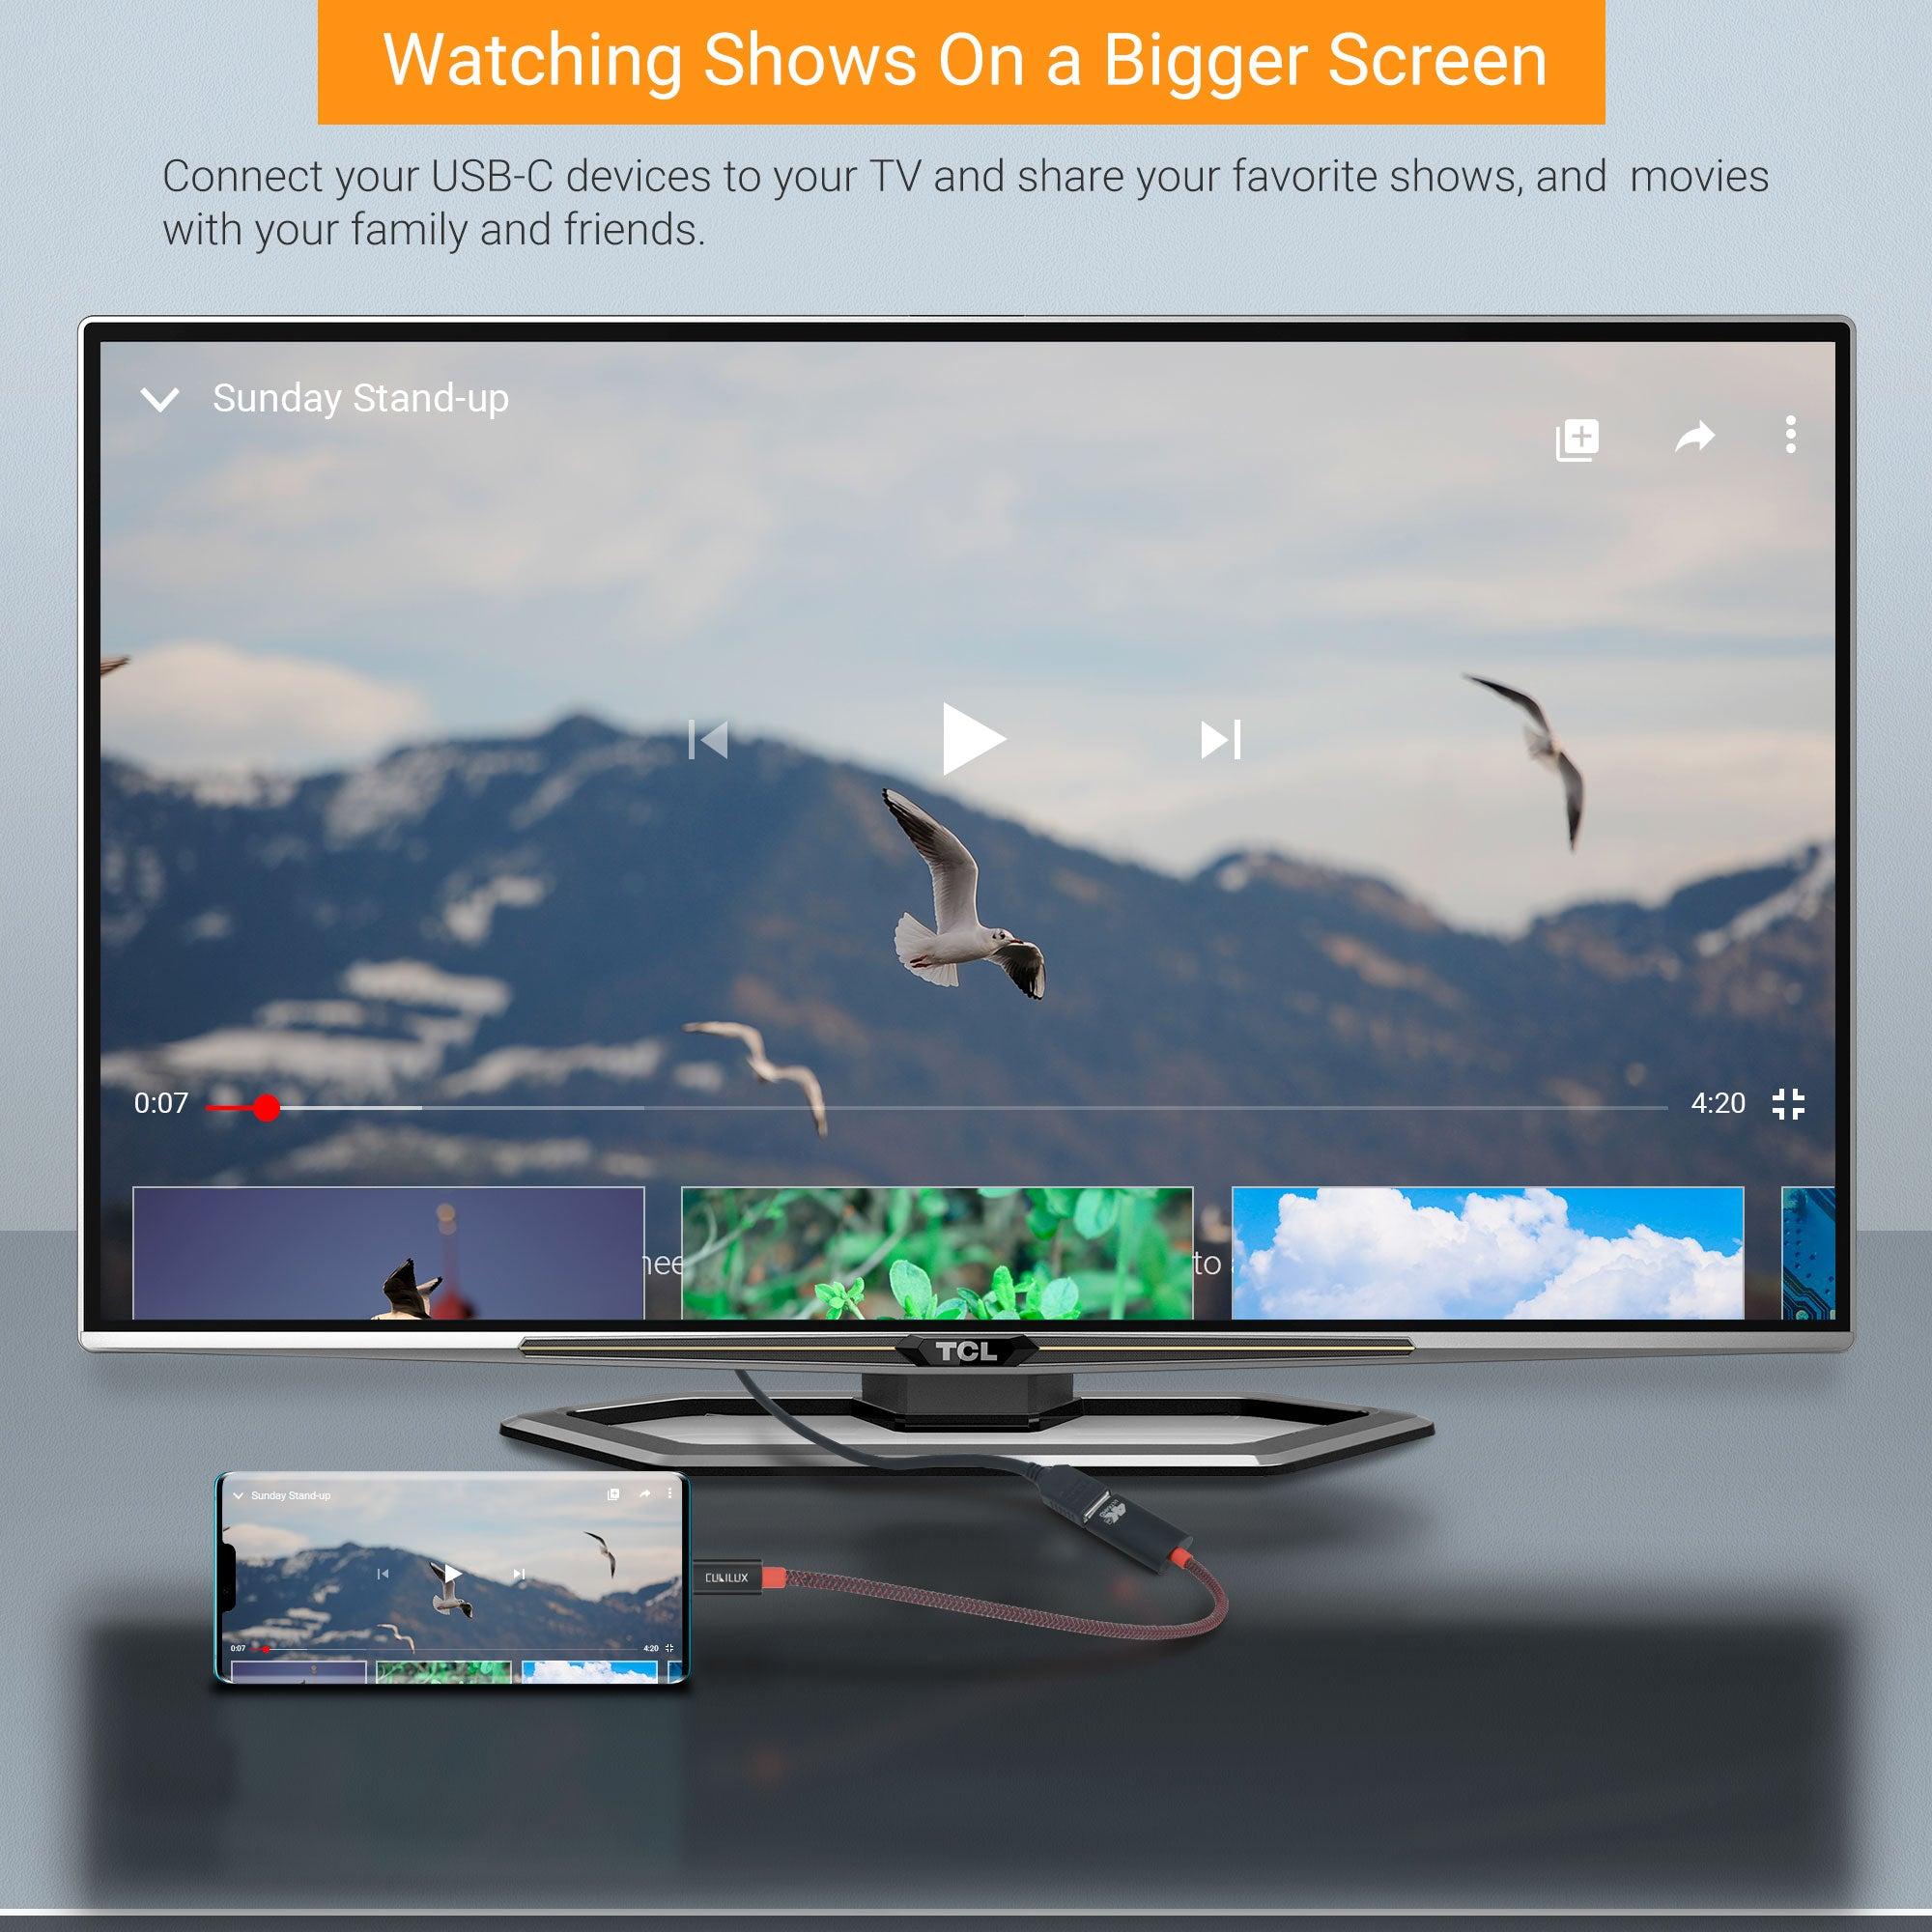 Enjoy 4K Video from Your USB-C Devices on Big Screen